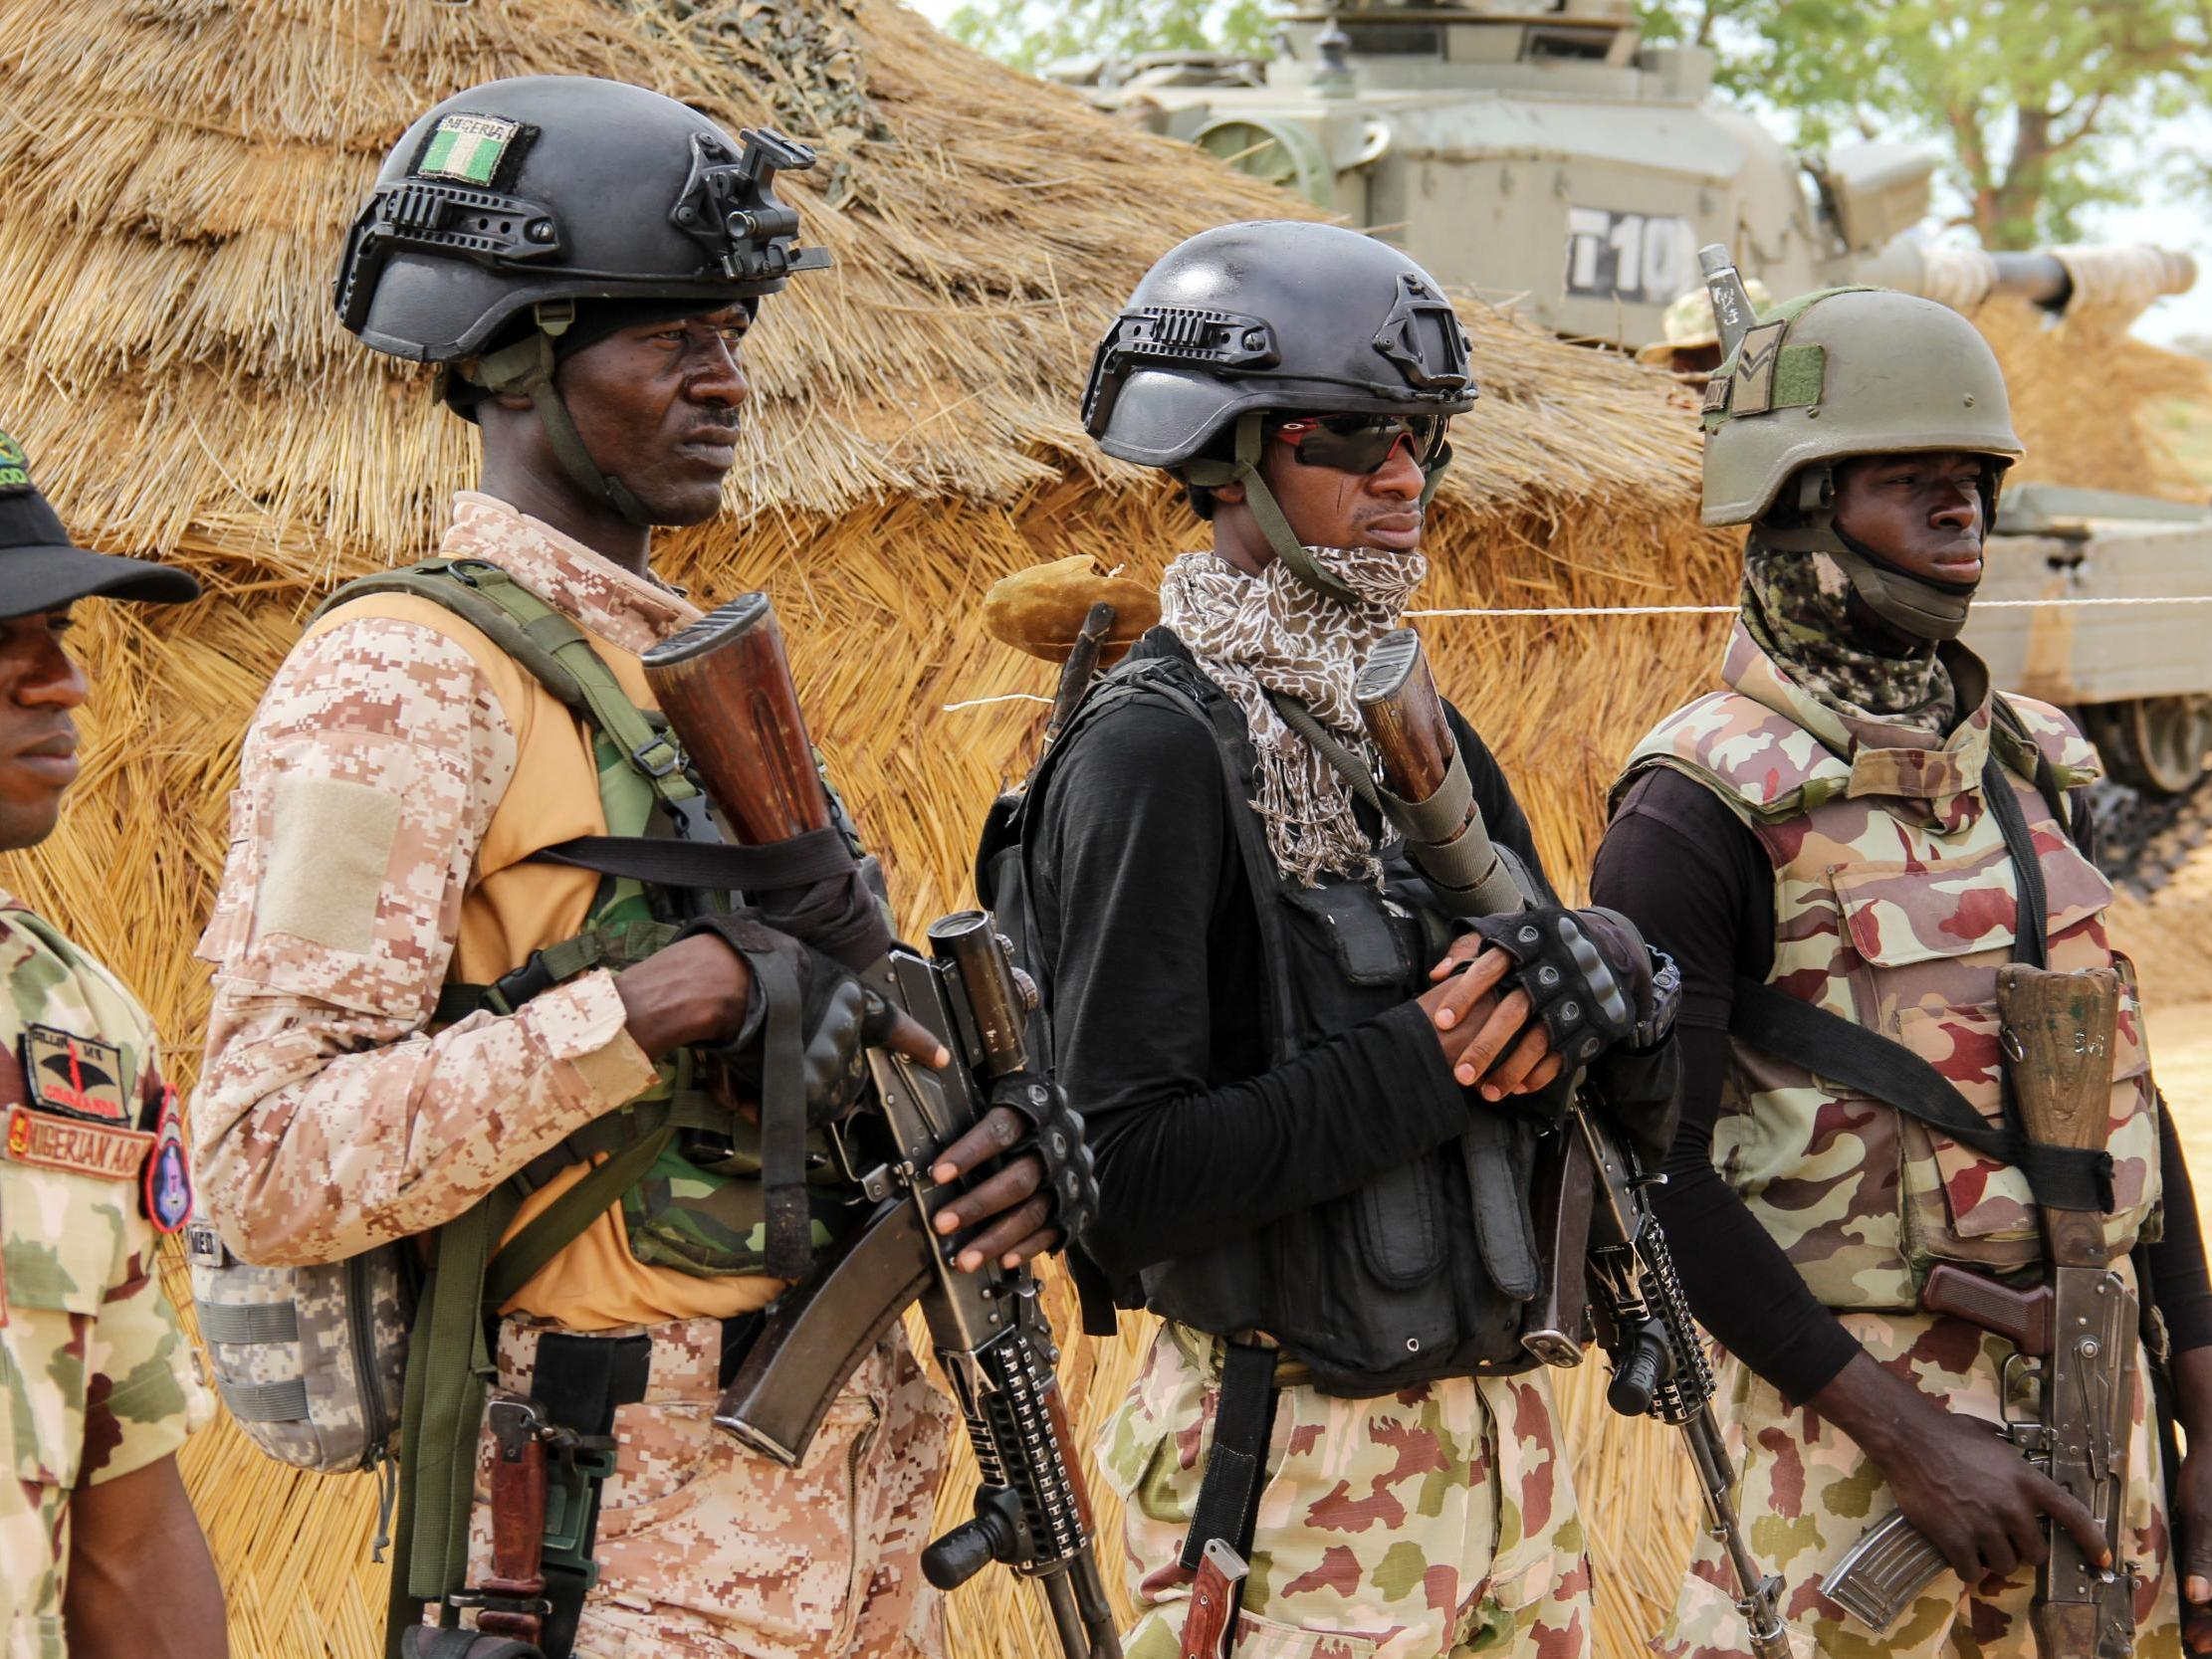 In Nigeria, a new crisis deadlier than Boko Haram is rising